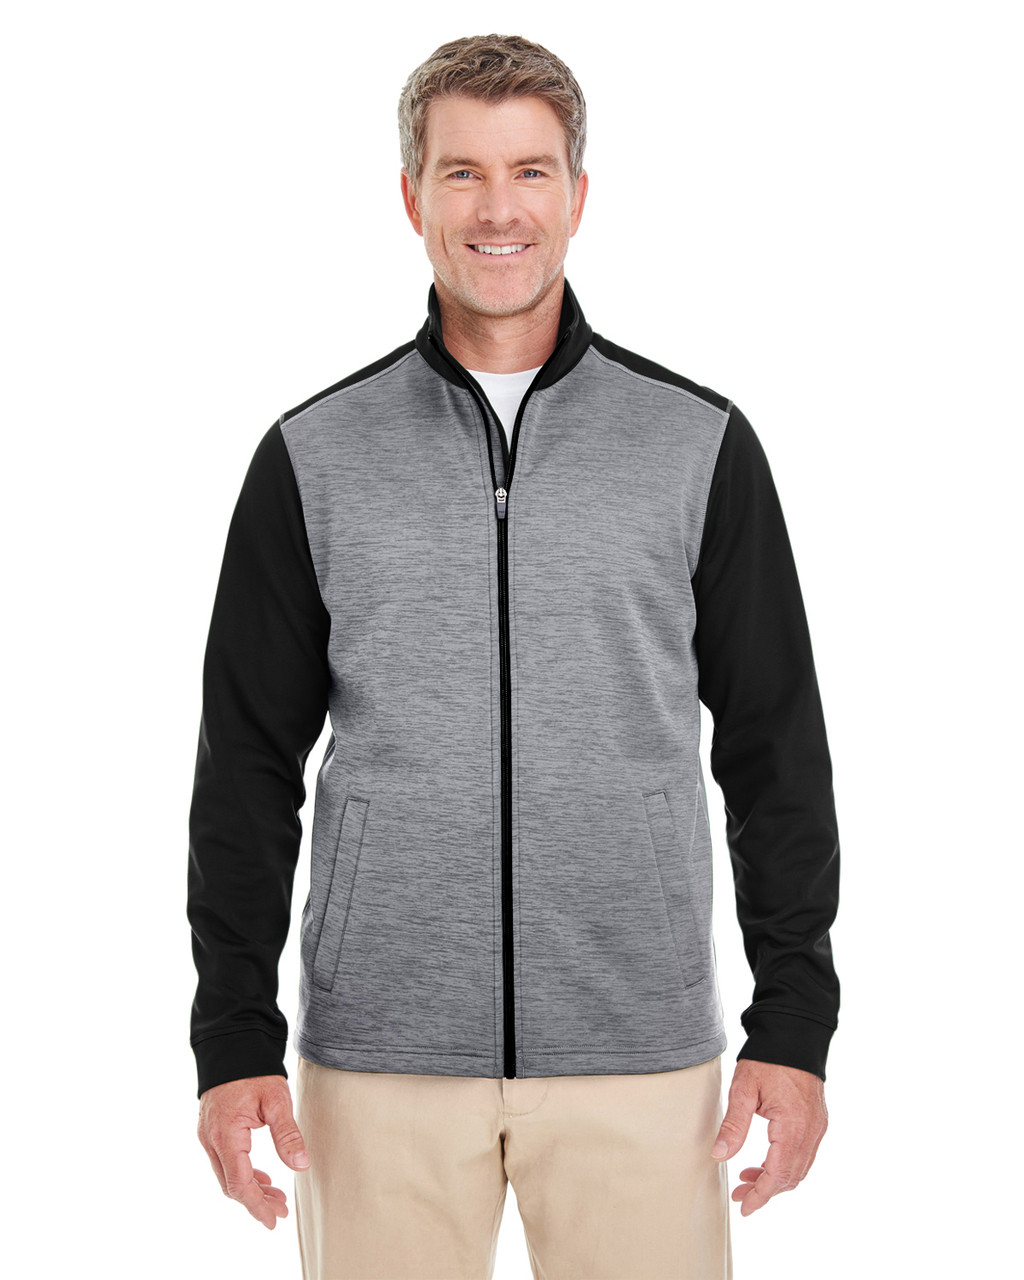 Black Heather / Dark Grey Heather - DG796 Devon & Jones Men's Newbury Colorblock Mélange Fleece Full-Zip Sweater